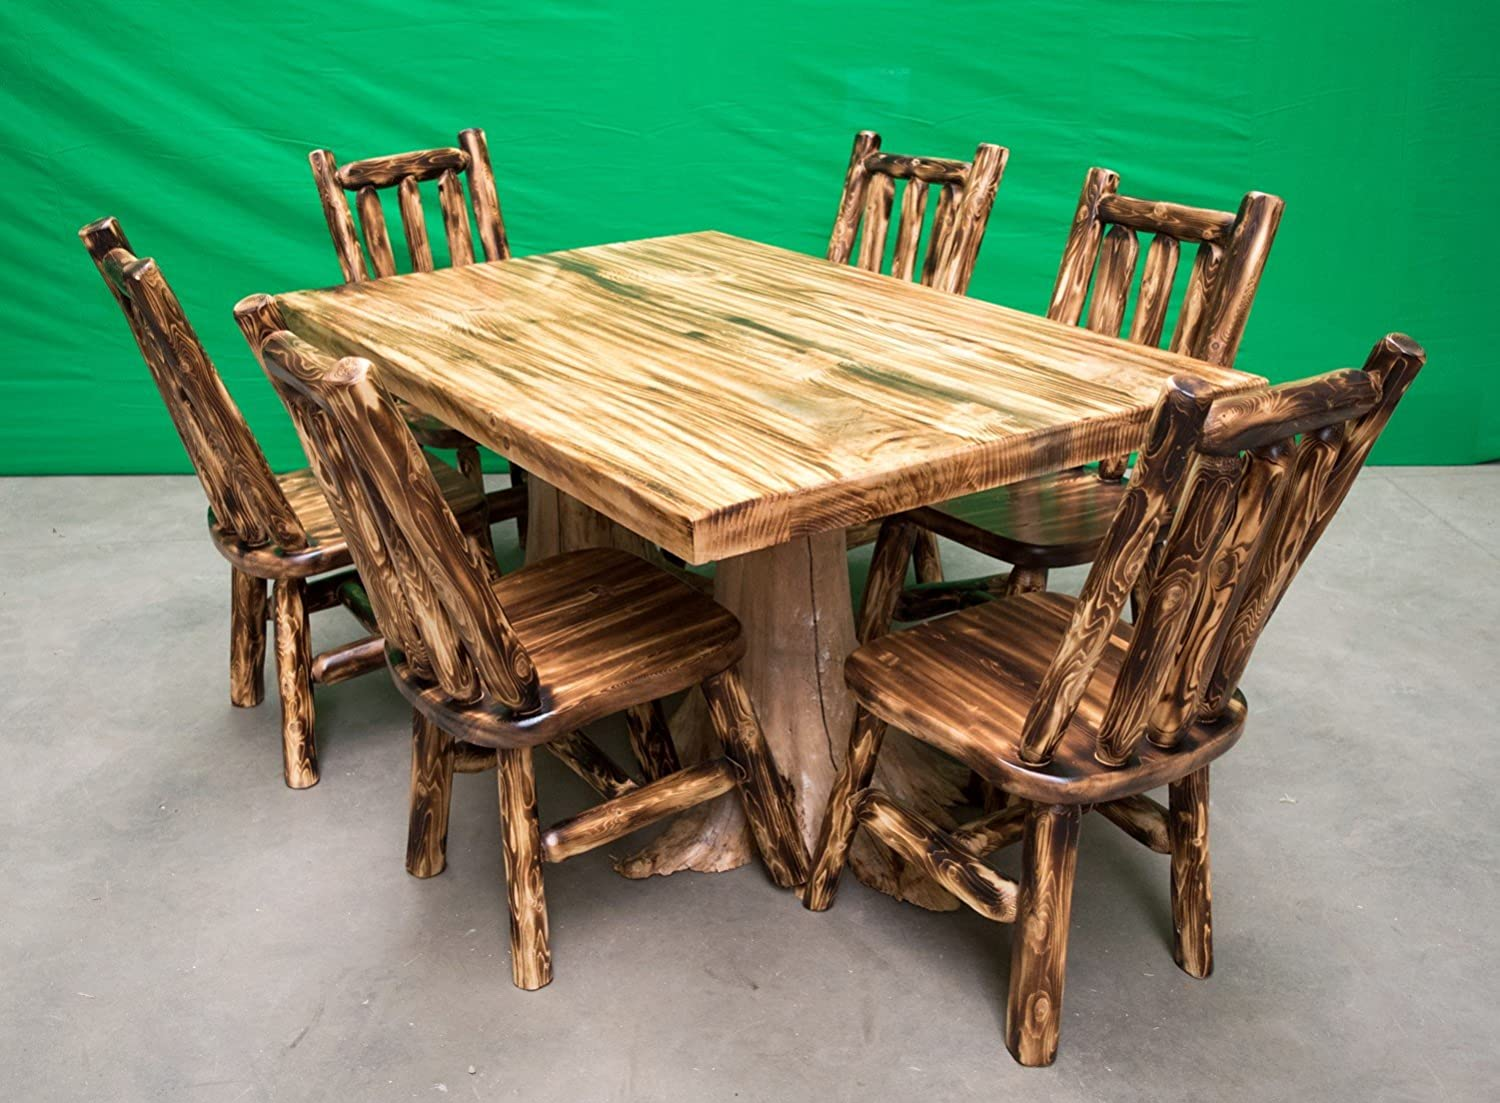 Amazon.com - Midwest Log Furniture - Torched Cedar Stump Dining